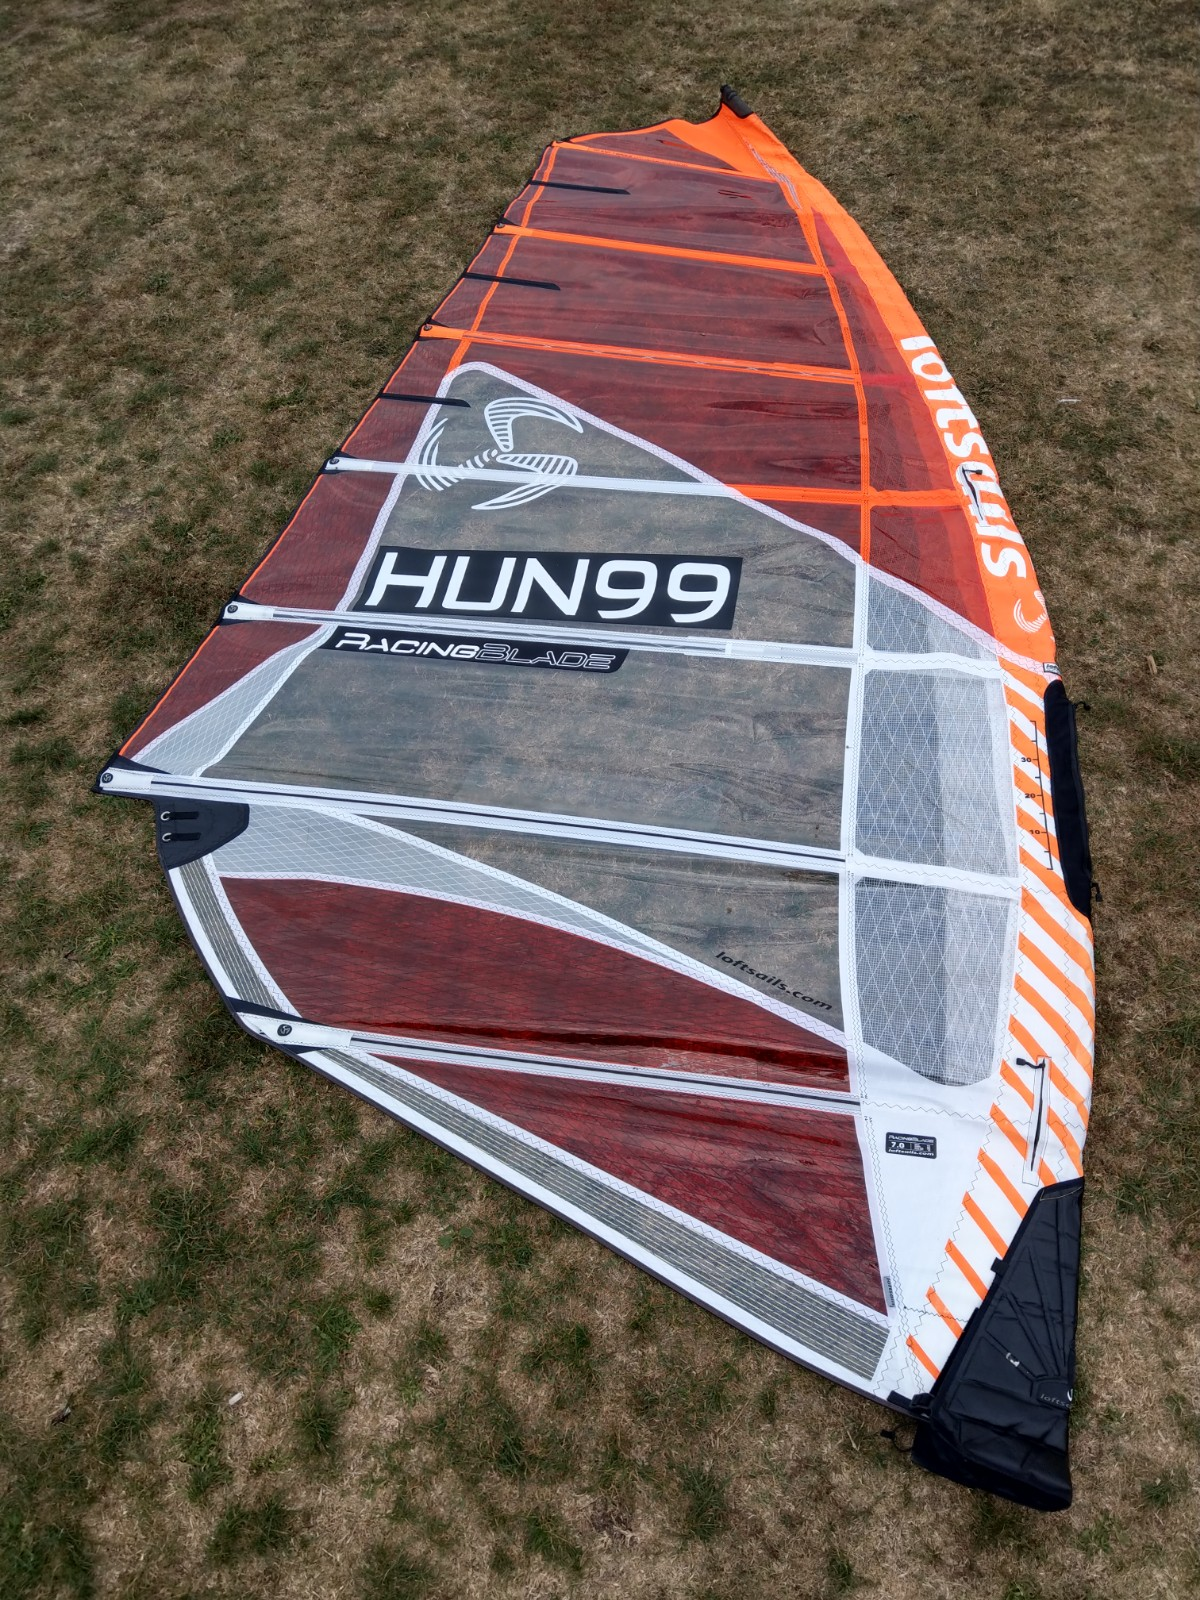 Loftsails racing blade 7.0